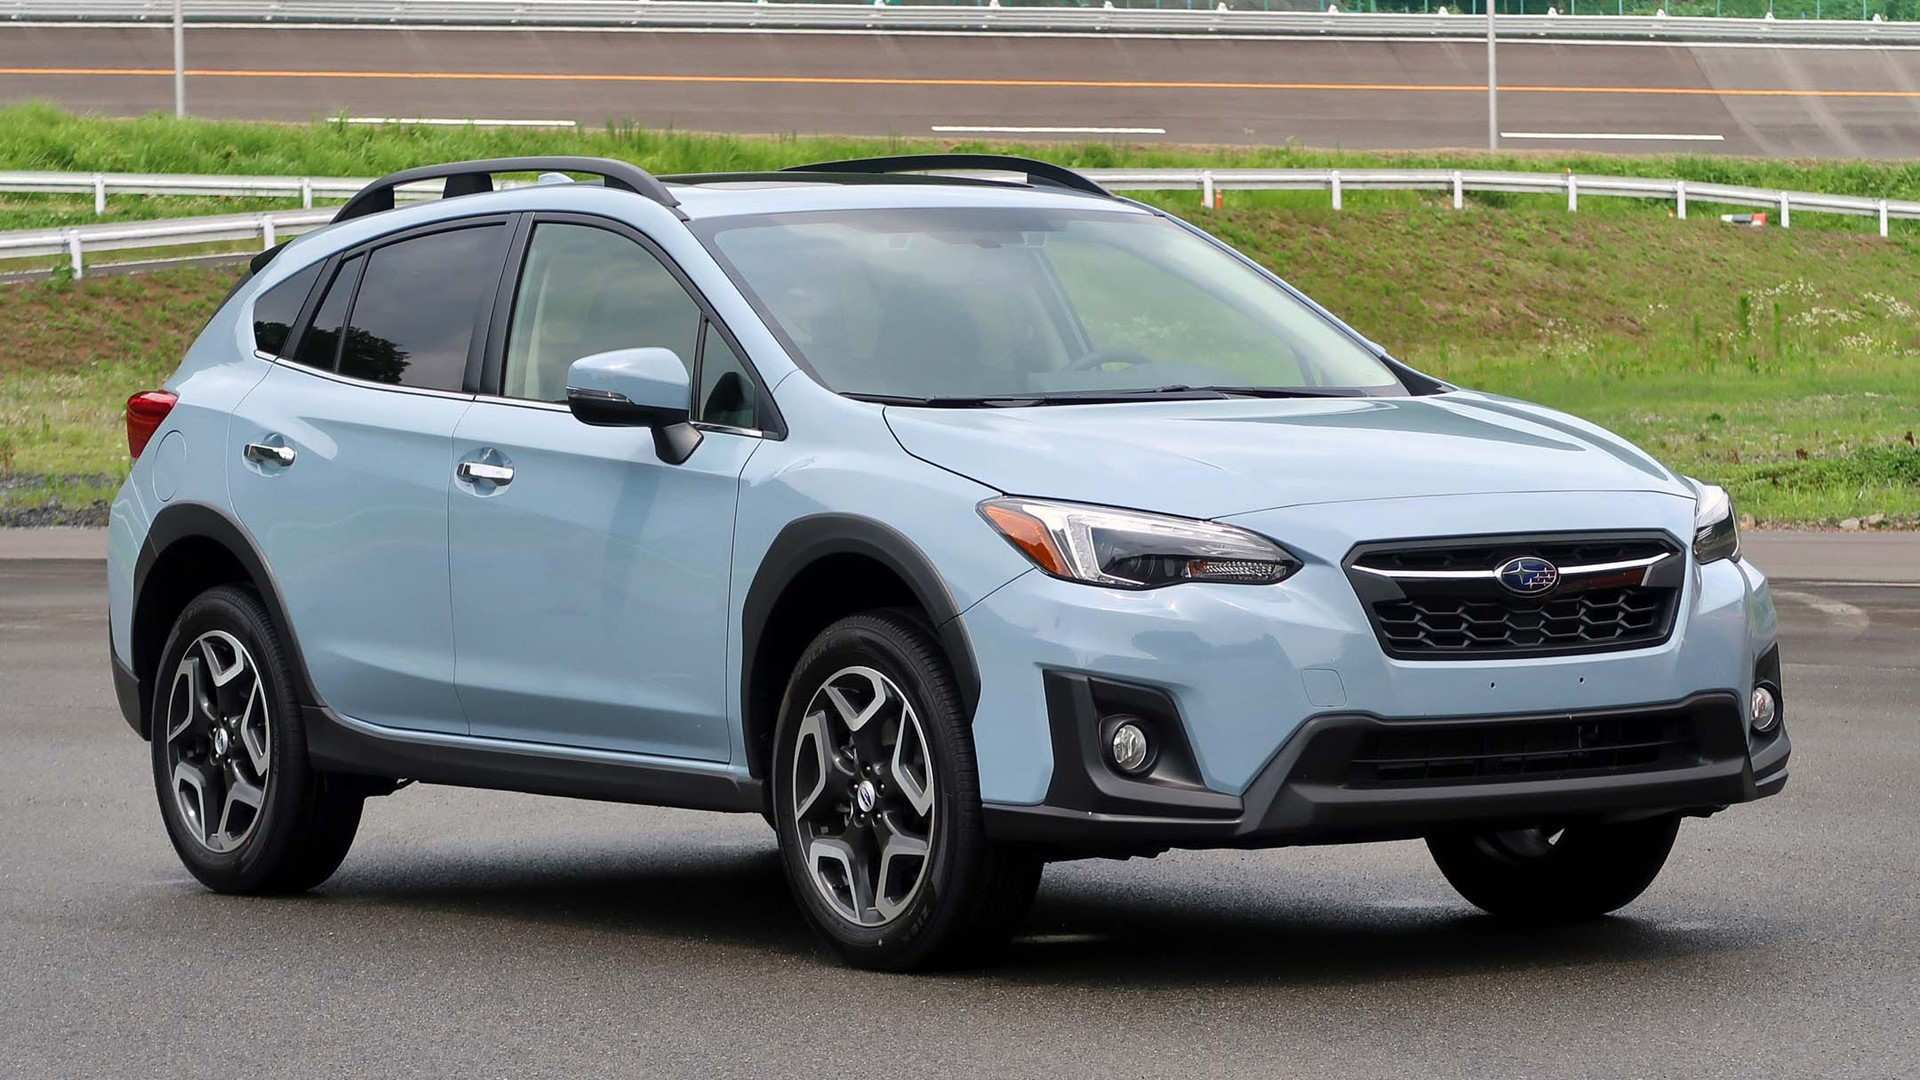 57 Best Review Subaru Crosstrek 2020 Canada Price and Review by Subaru Crosstrek 2020 Canada